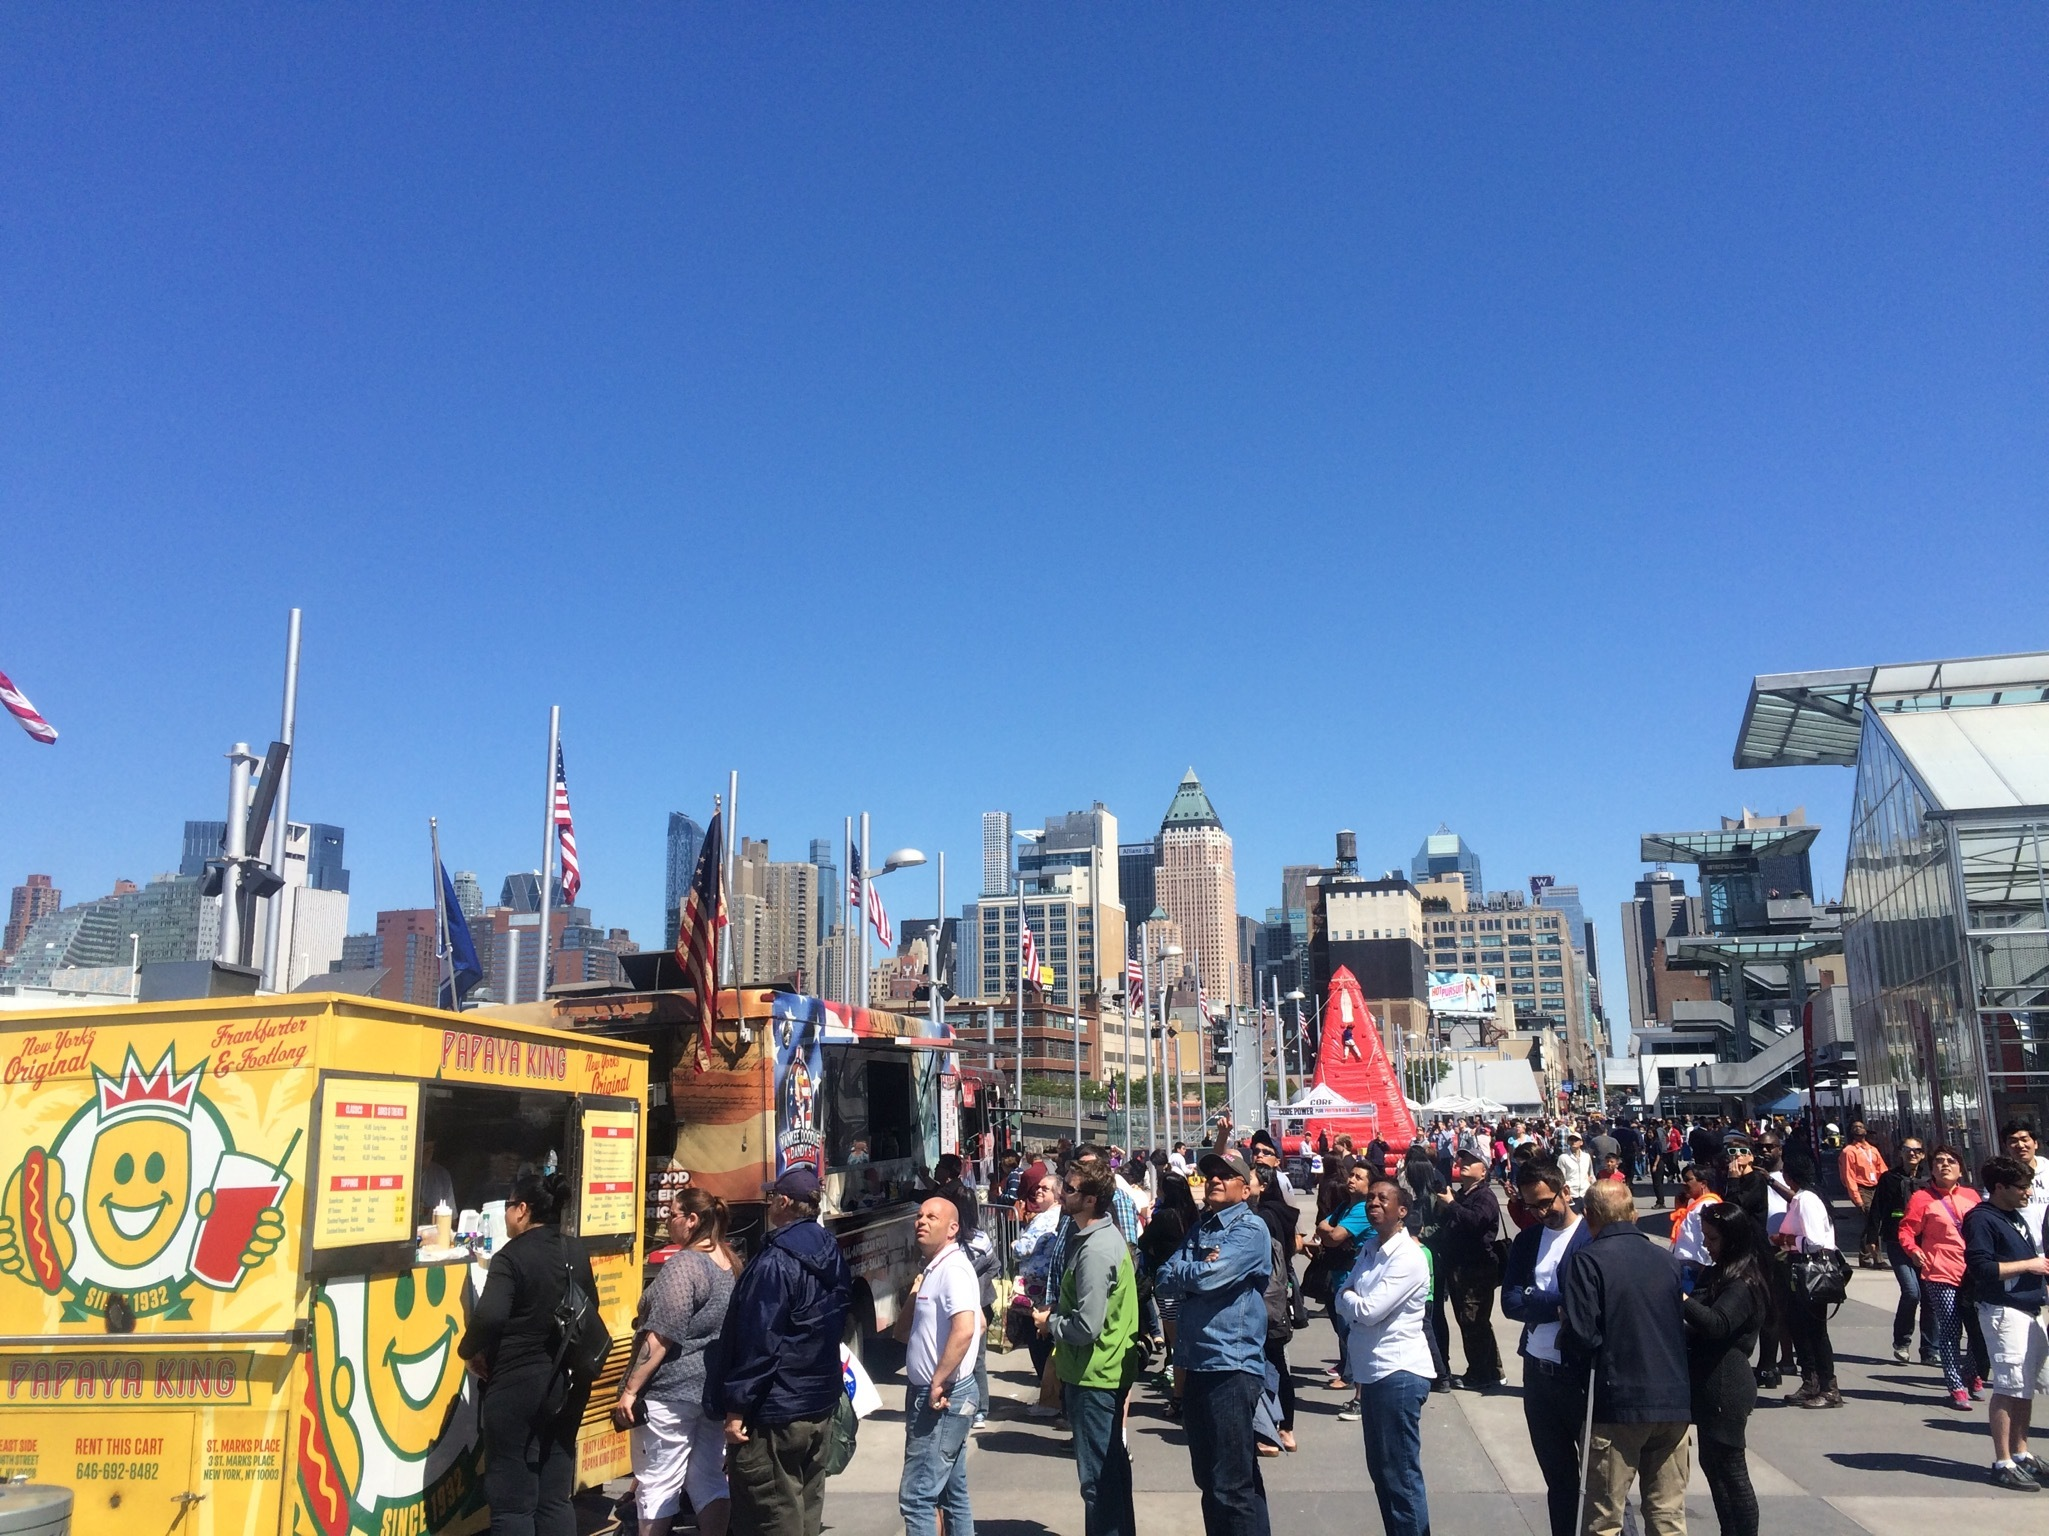 A slammin' NYC Food Truck Fest is happening next Sunday